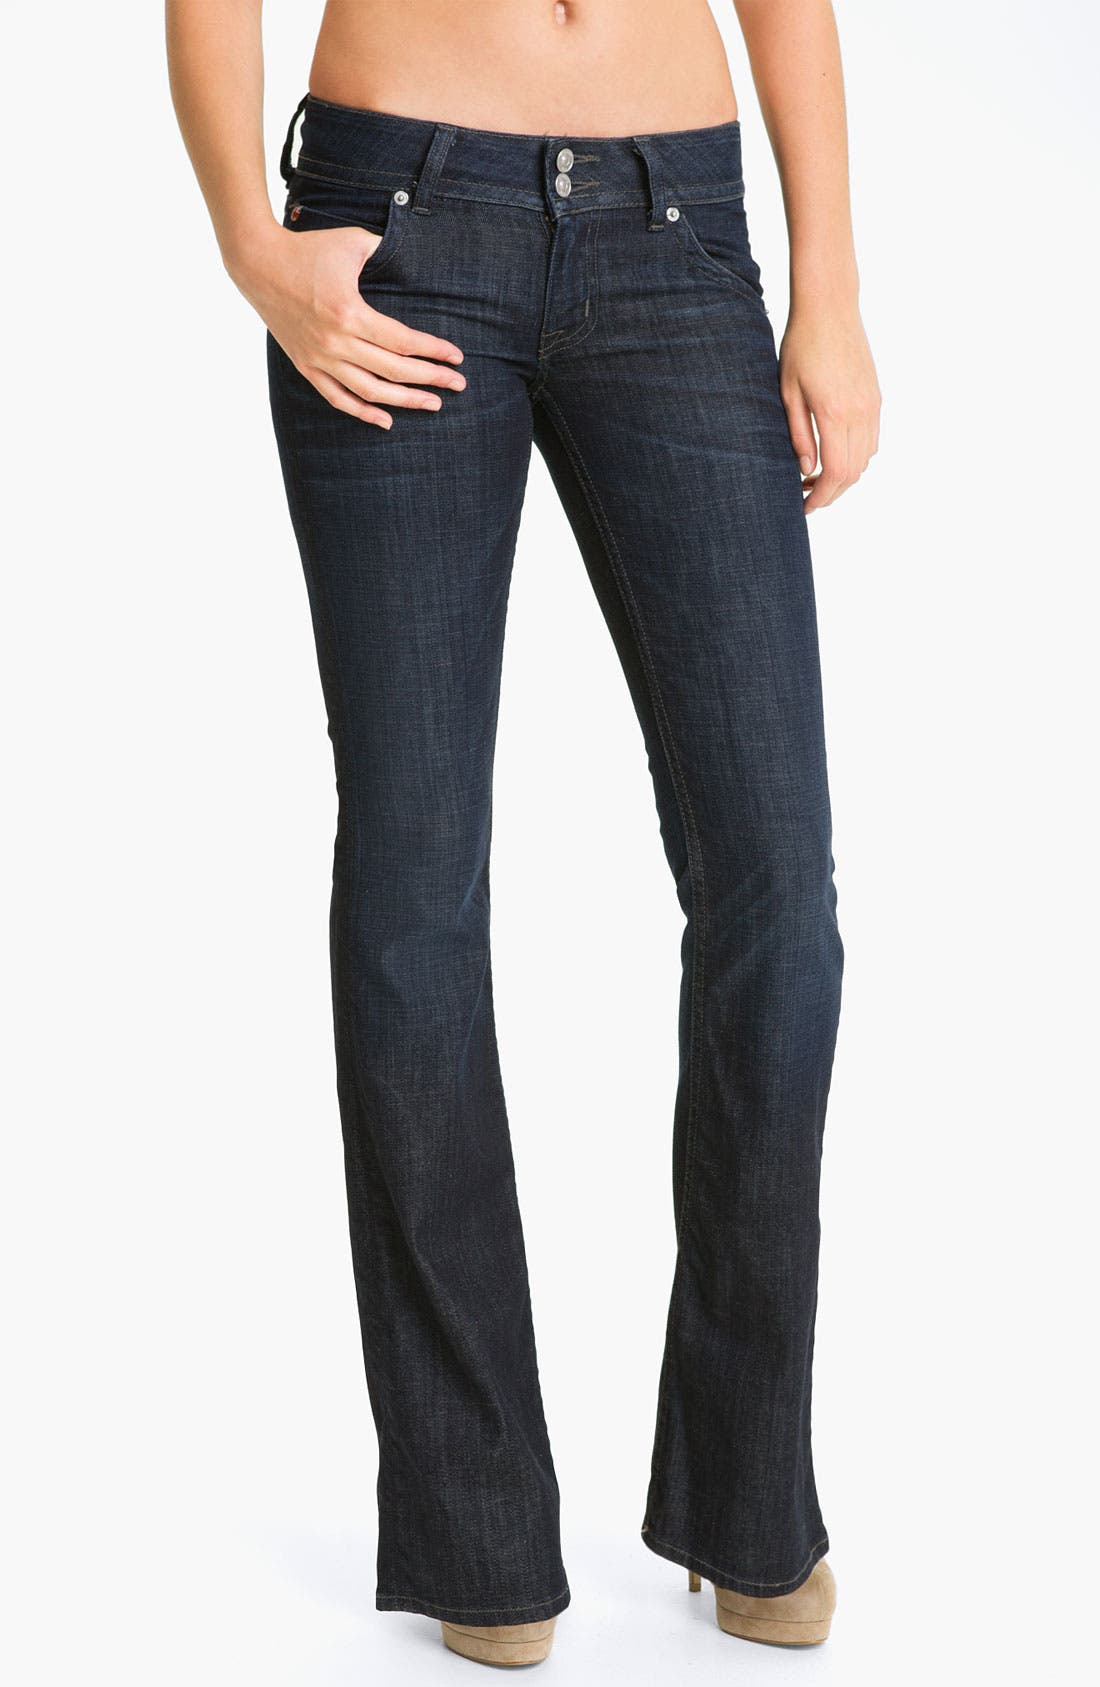 Alternate Image 1 Selected - Hudson Jeans Signature Flap Pocket Bootcut Jeans (Savage)